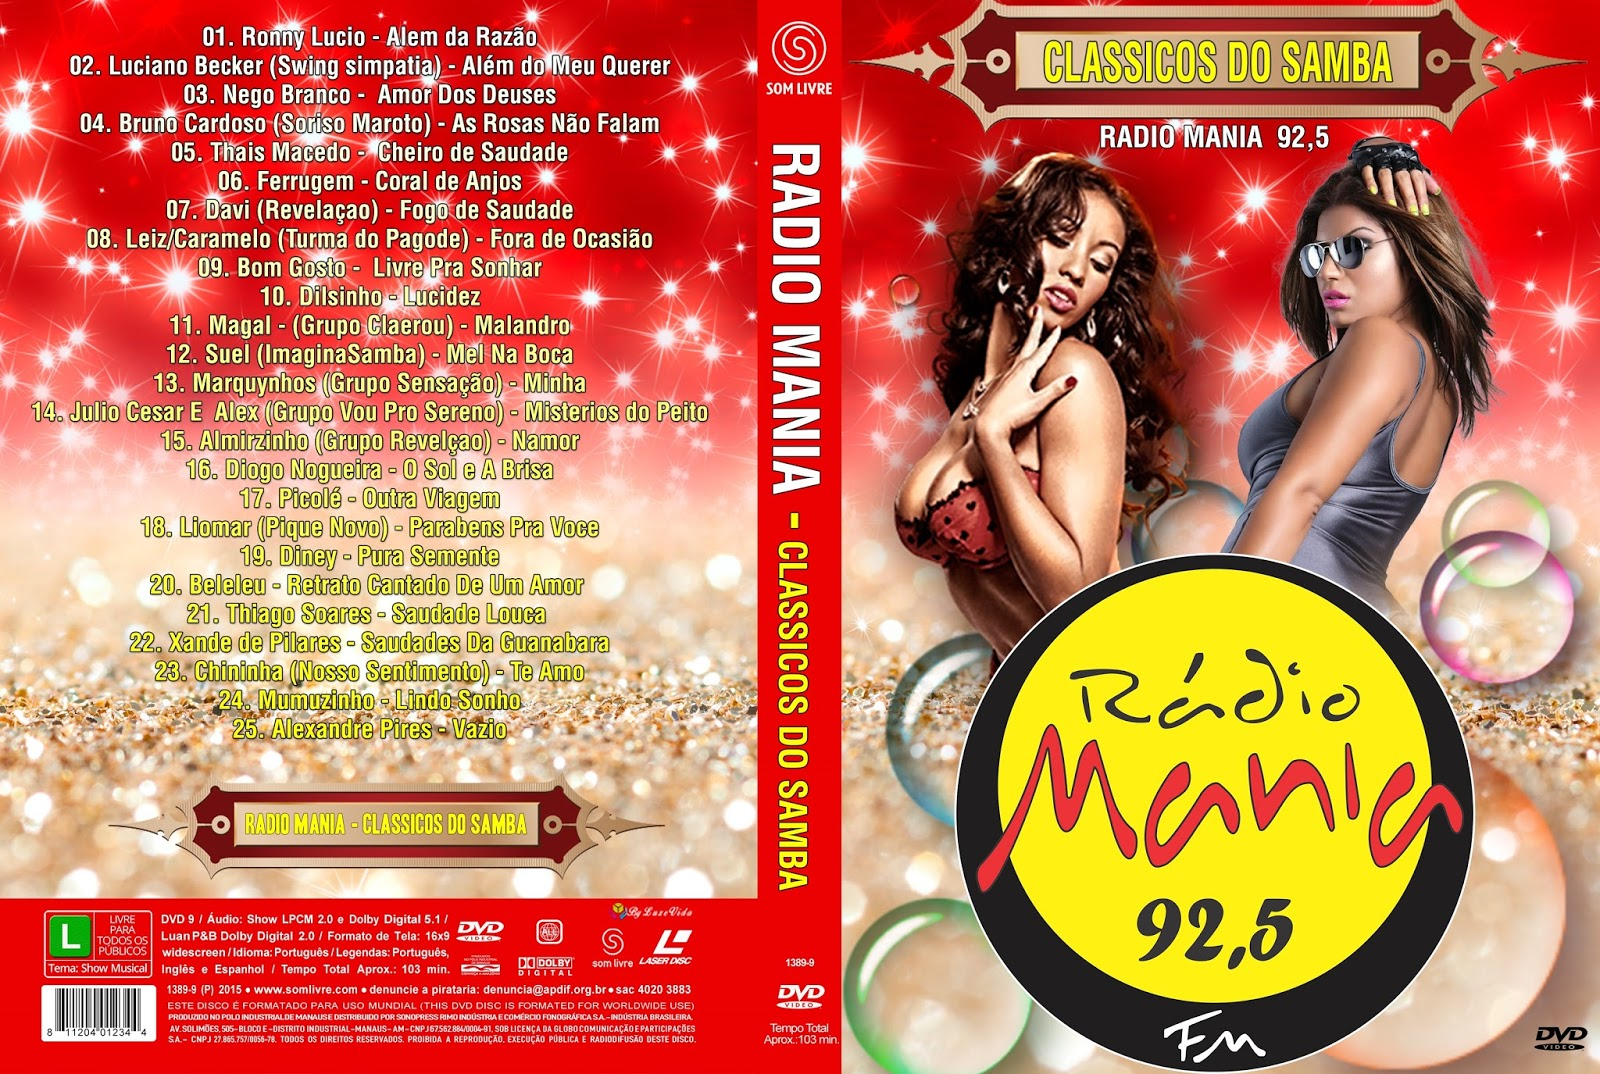 Download Radio Mania Classicos do Samba DVD-R Radio 2BMania 2BClassicos 2Bdo 2BSamba 2BXANDAODOWNLOAD